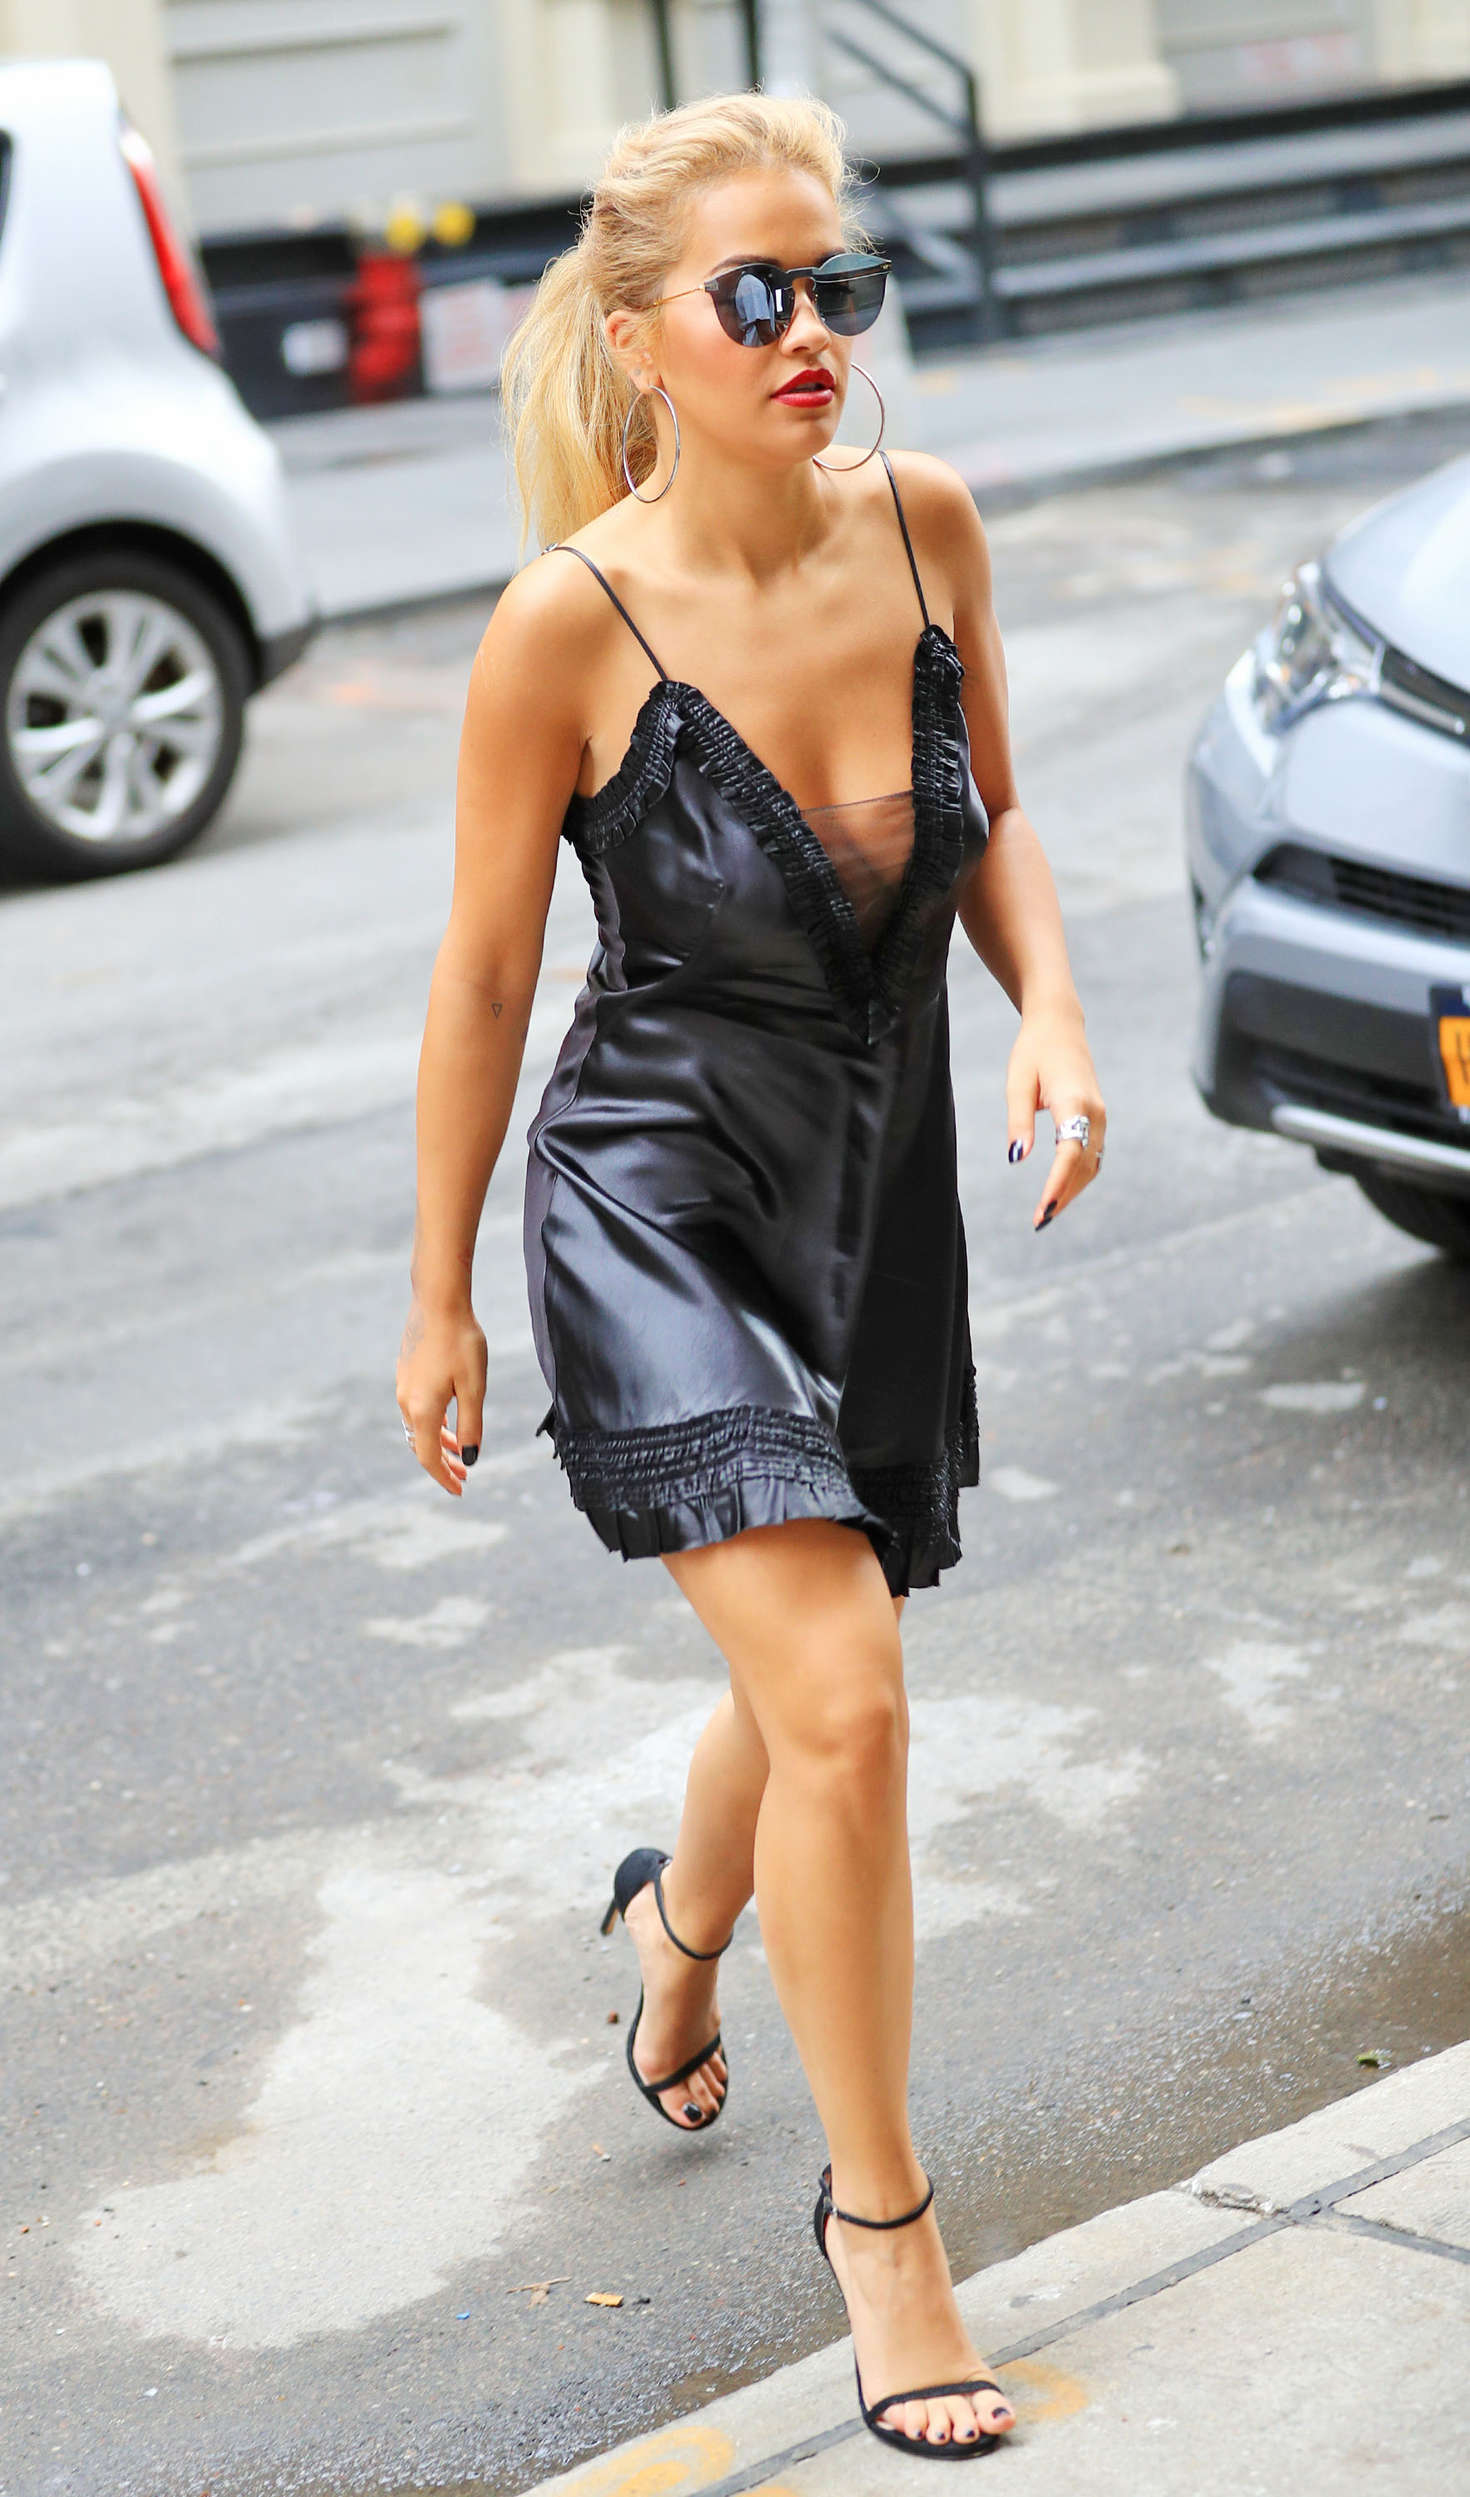 Rita Ora In Black Mini Dress 16 Gotceleb